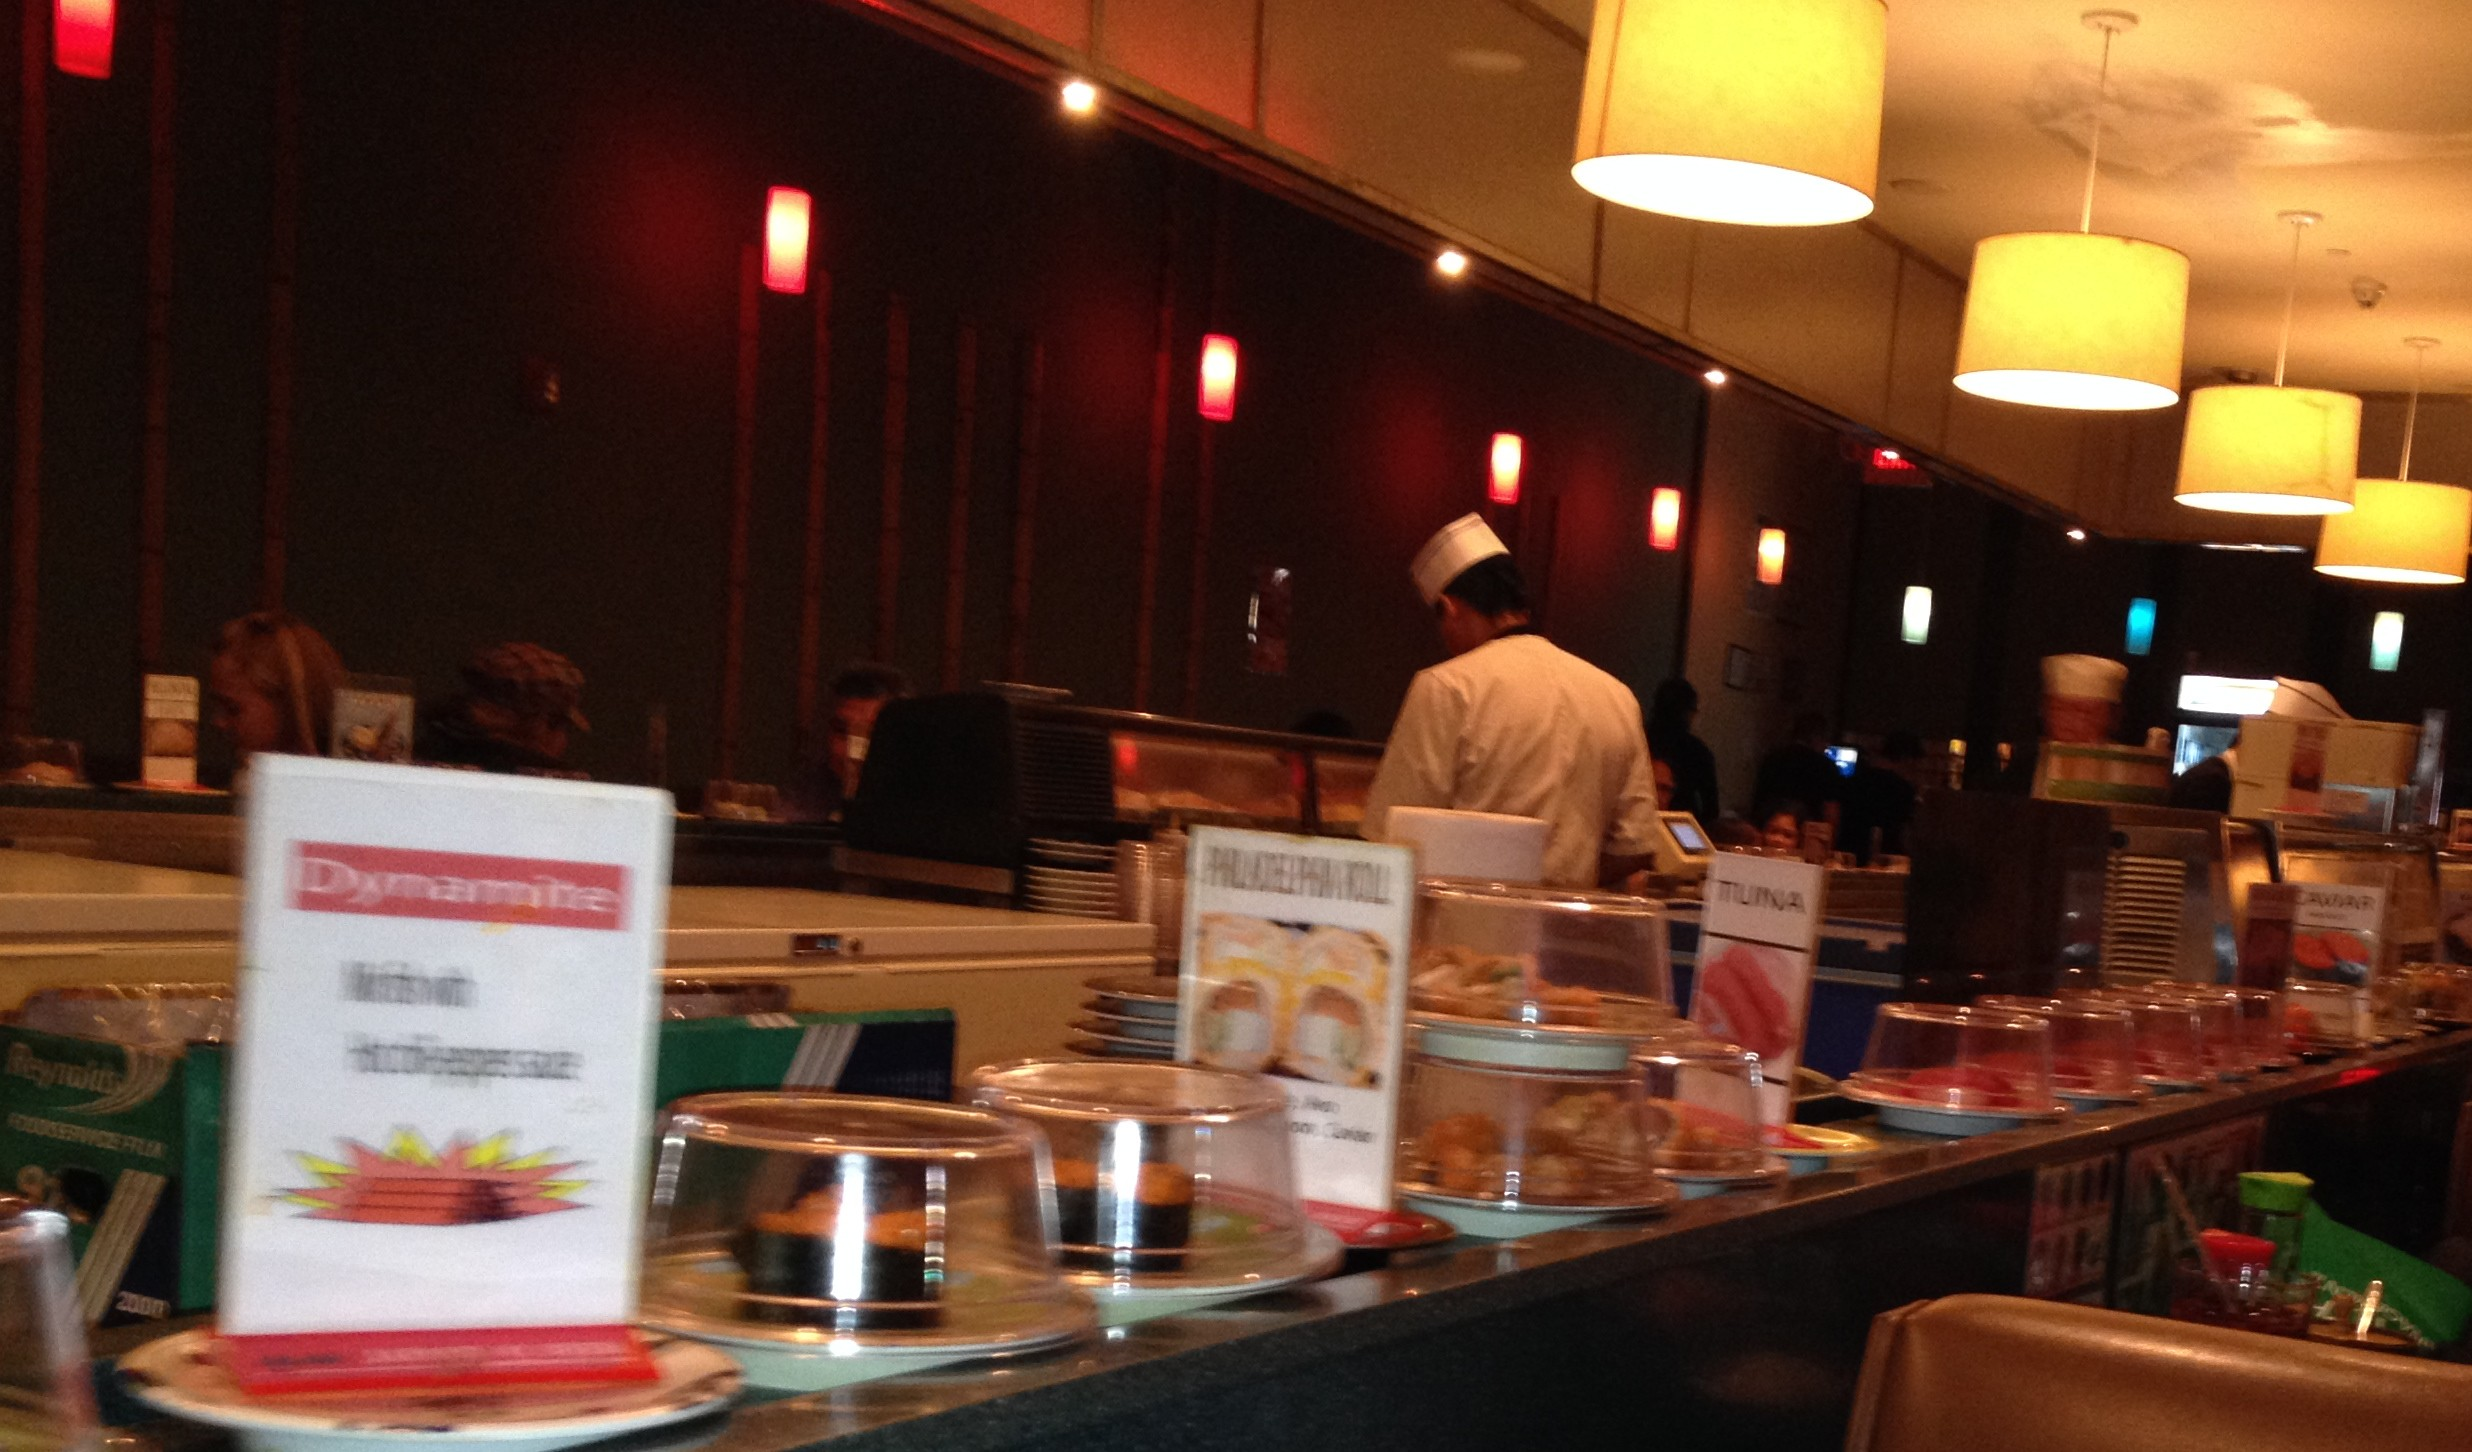 East sushi conveyor belt